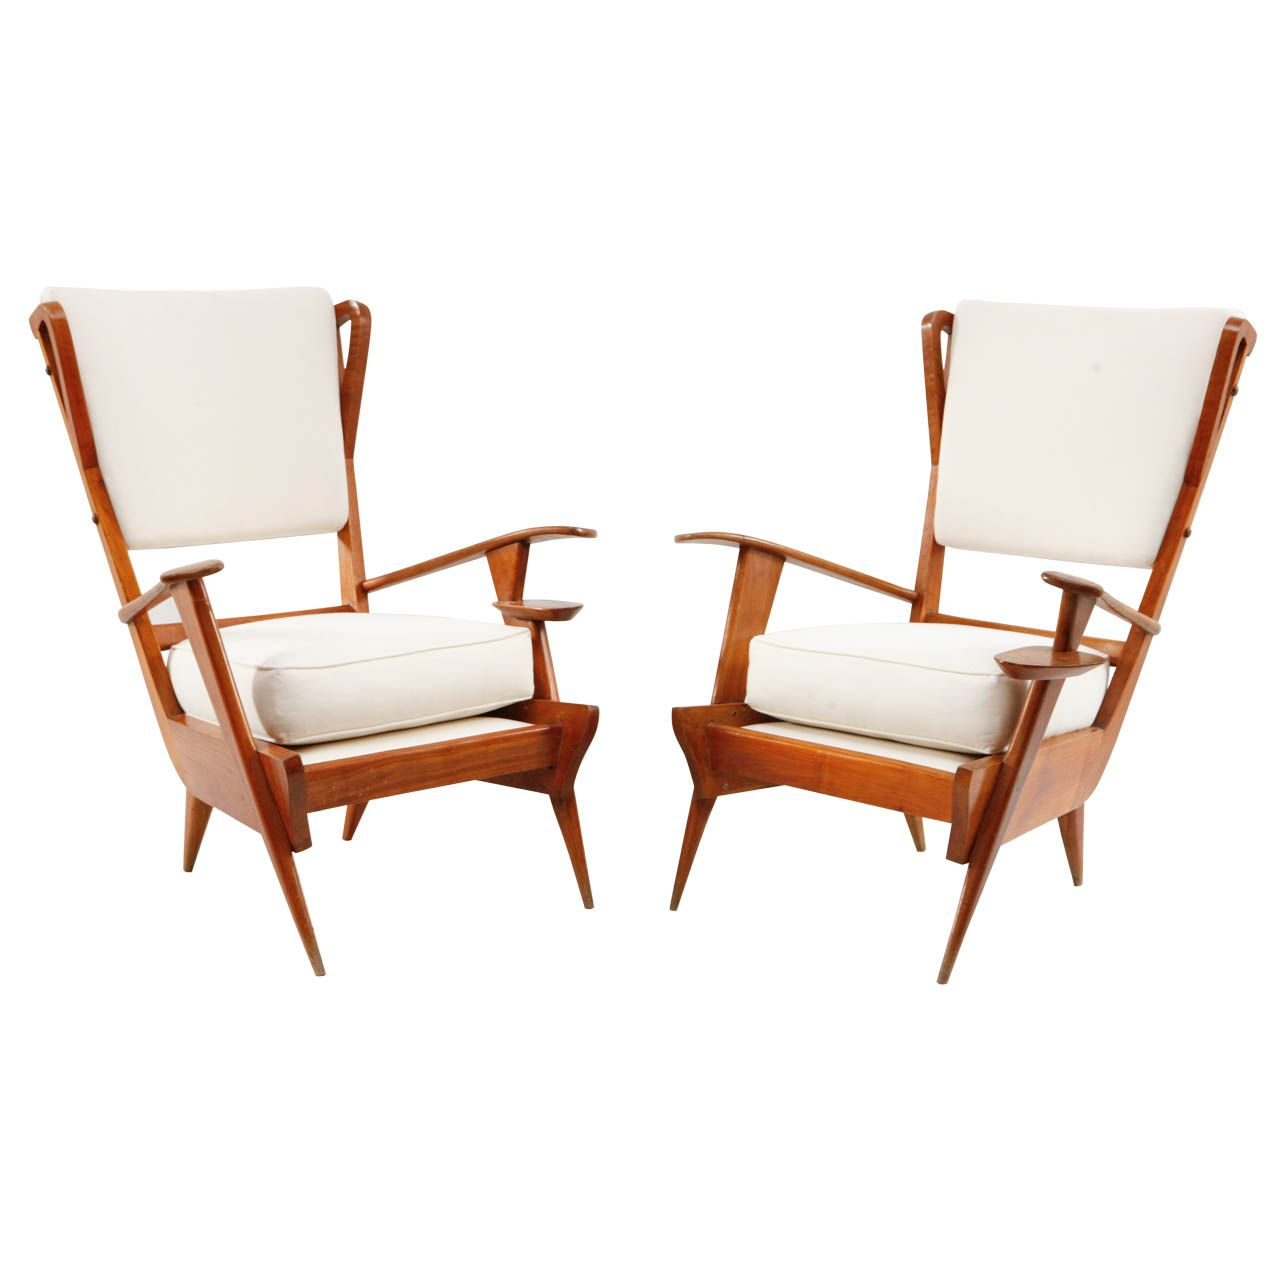 Pair of Italian Teak Viewing Chairs with Cup Holder | From a unique collection of antique and modern lounge chairs at http://www.1stdibs.com/furniture/seating/lounge-chairs/